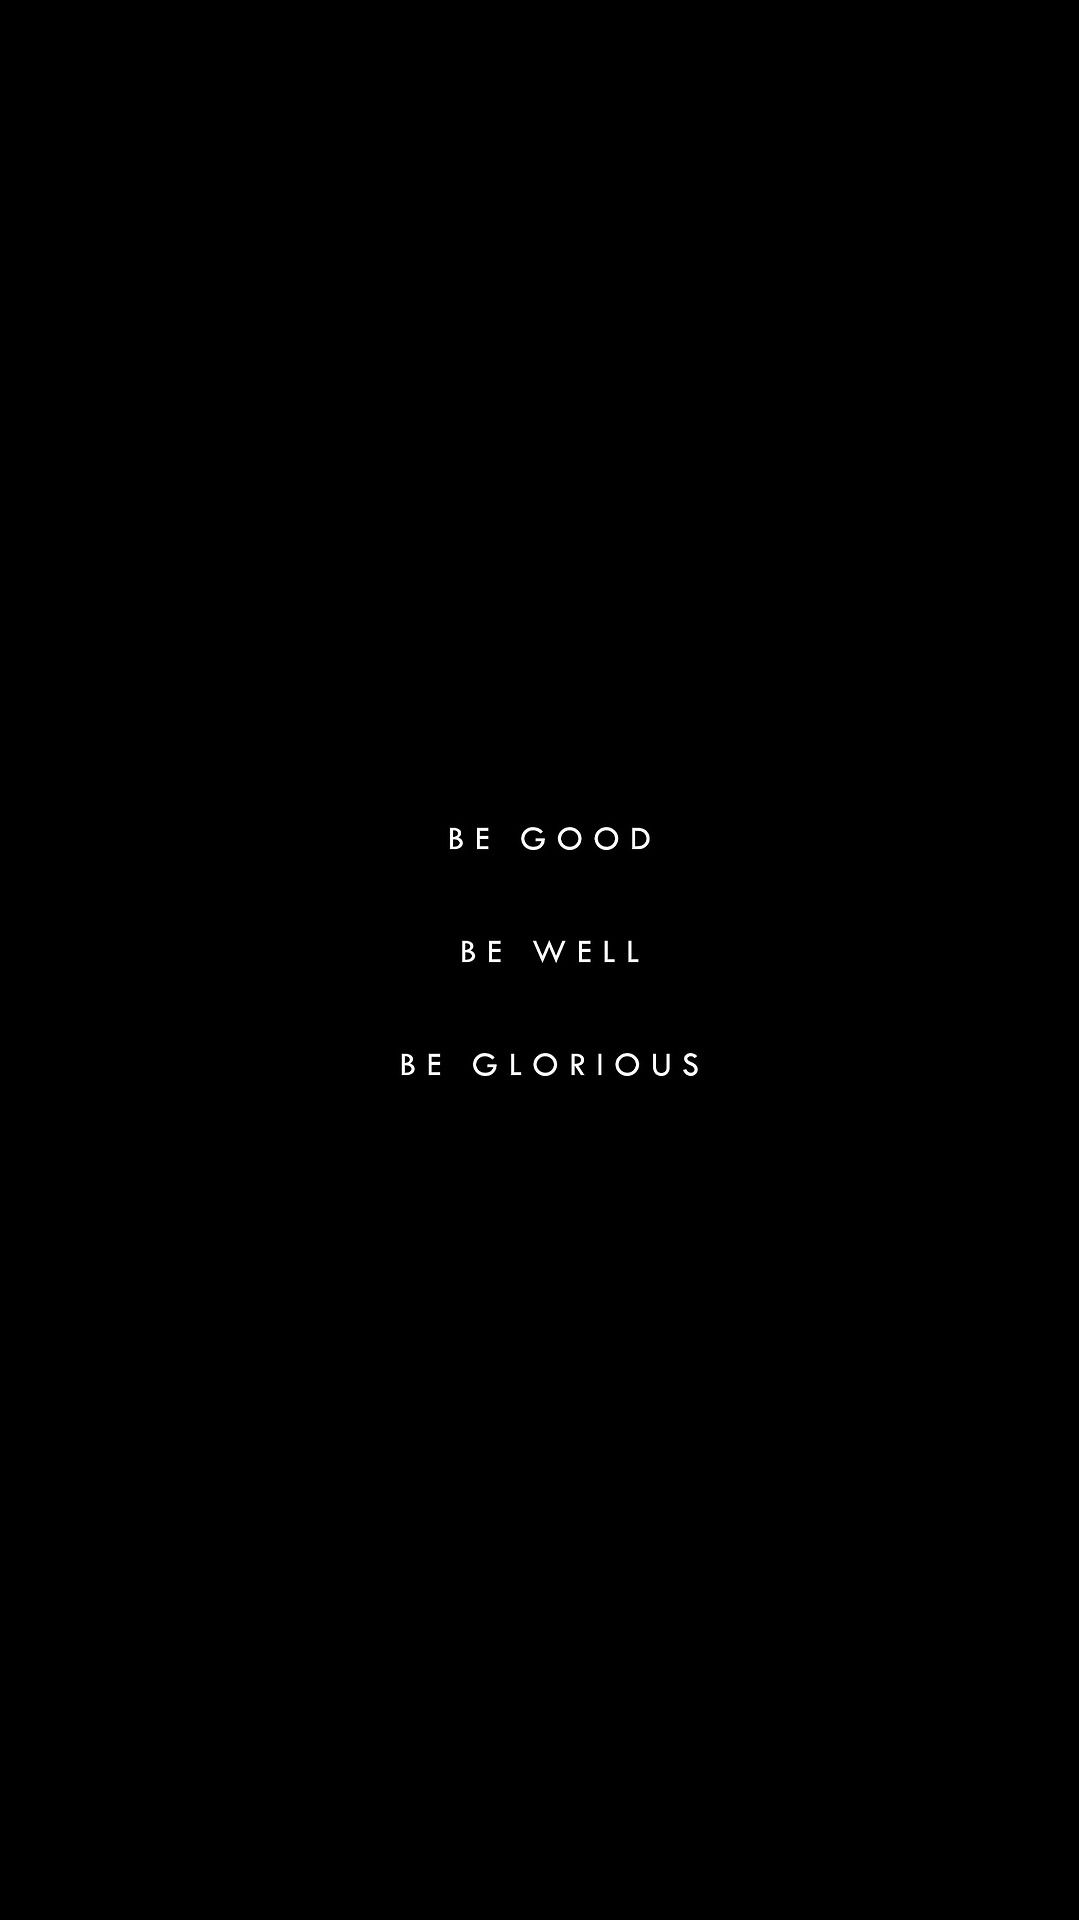 Be Good Be Well Be Glorious Request Mark Lik Ply Sir Quote Aesthetic Black Quotes Wallpaper Silence Quotes